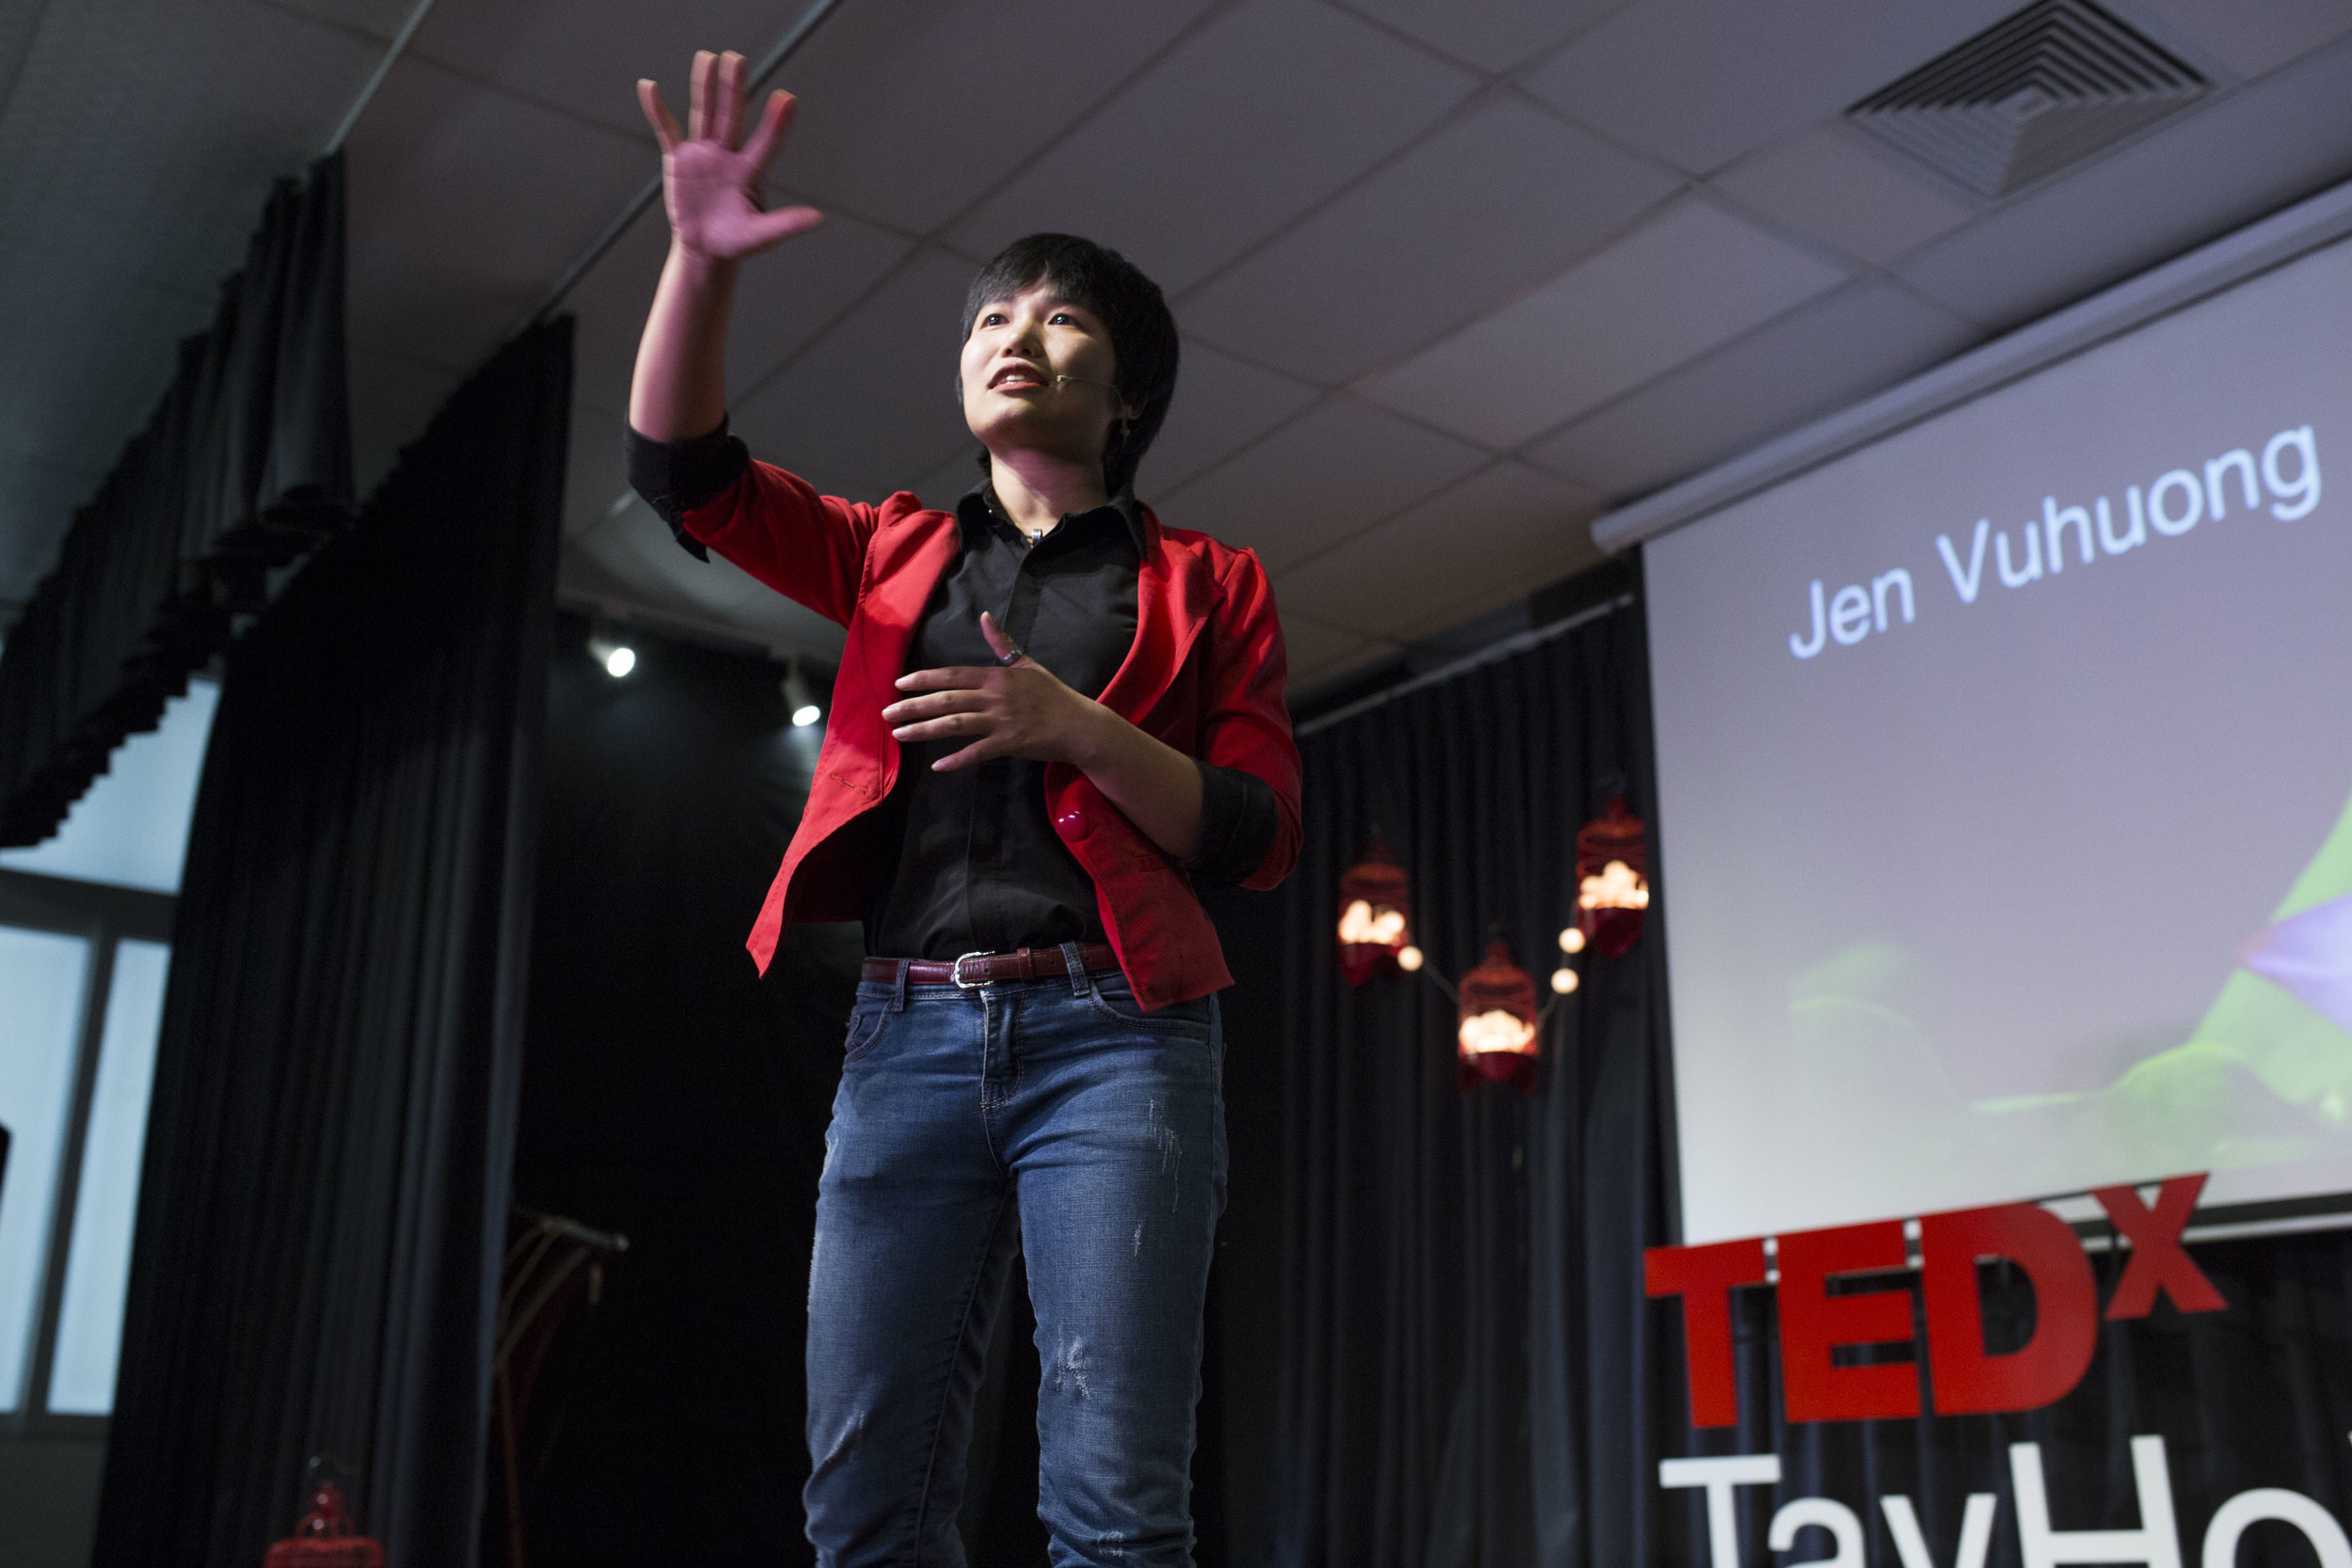 Jen Vuhuong - author of 5 books     Tedx    speaker;     Trainer    at Spark!lab Leadership and Innovation program sponsored by the US Embassy;     Winner    of Public speaking contest organised by American Embassy;     Winner    of International Speech Contest in Vietnam and Penang, Malaysia;     Winner    of Humorous and Evaluation contest in Hanoi speakers;     Key presenter    at Collaborative leadership conference in Bradford University in the UK and Enterprise conference in Hue University in Vietnam;     Keynote speaker at    HViet program and AIESEC Youthspeak and Leadership from below organized by the UK Embassy      Read Jen's full bio